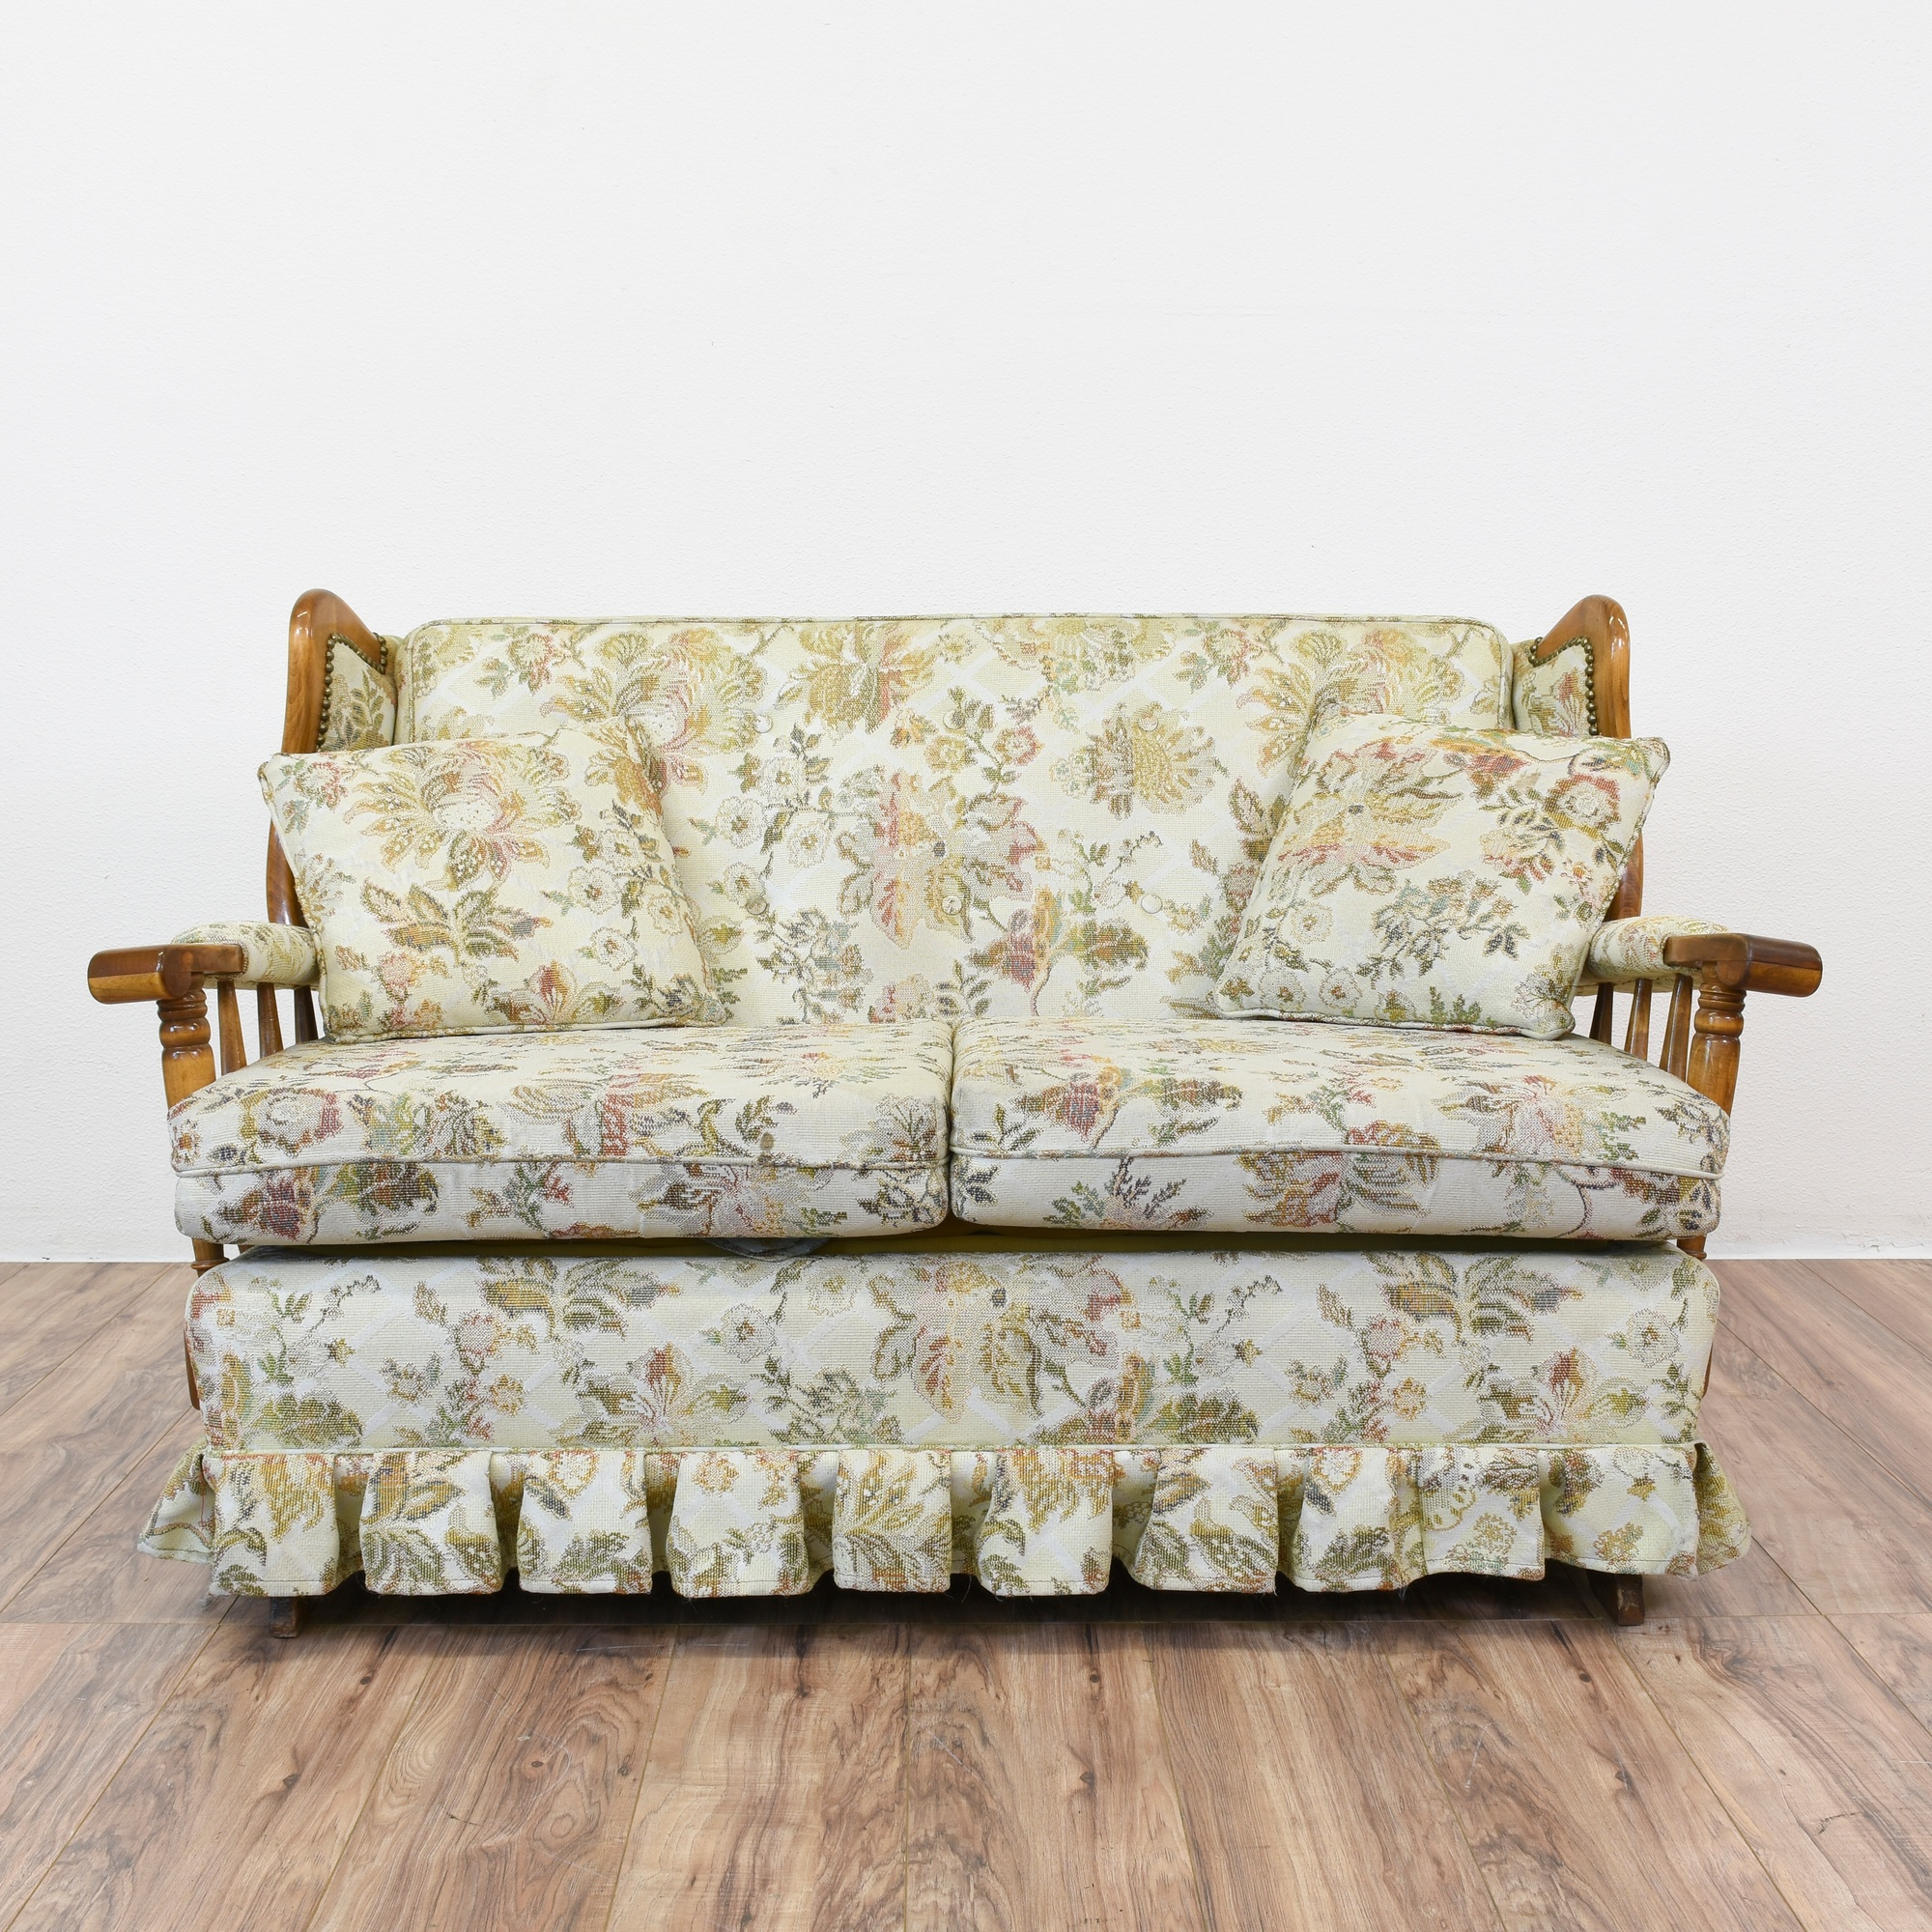 Floral Country Rocking Sofa Loveseat Loveseat Vintage Furniture San Diego Los Angeles